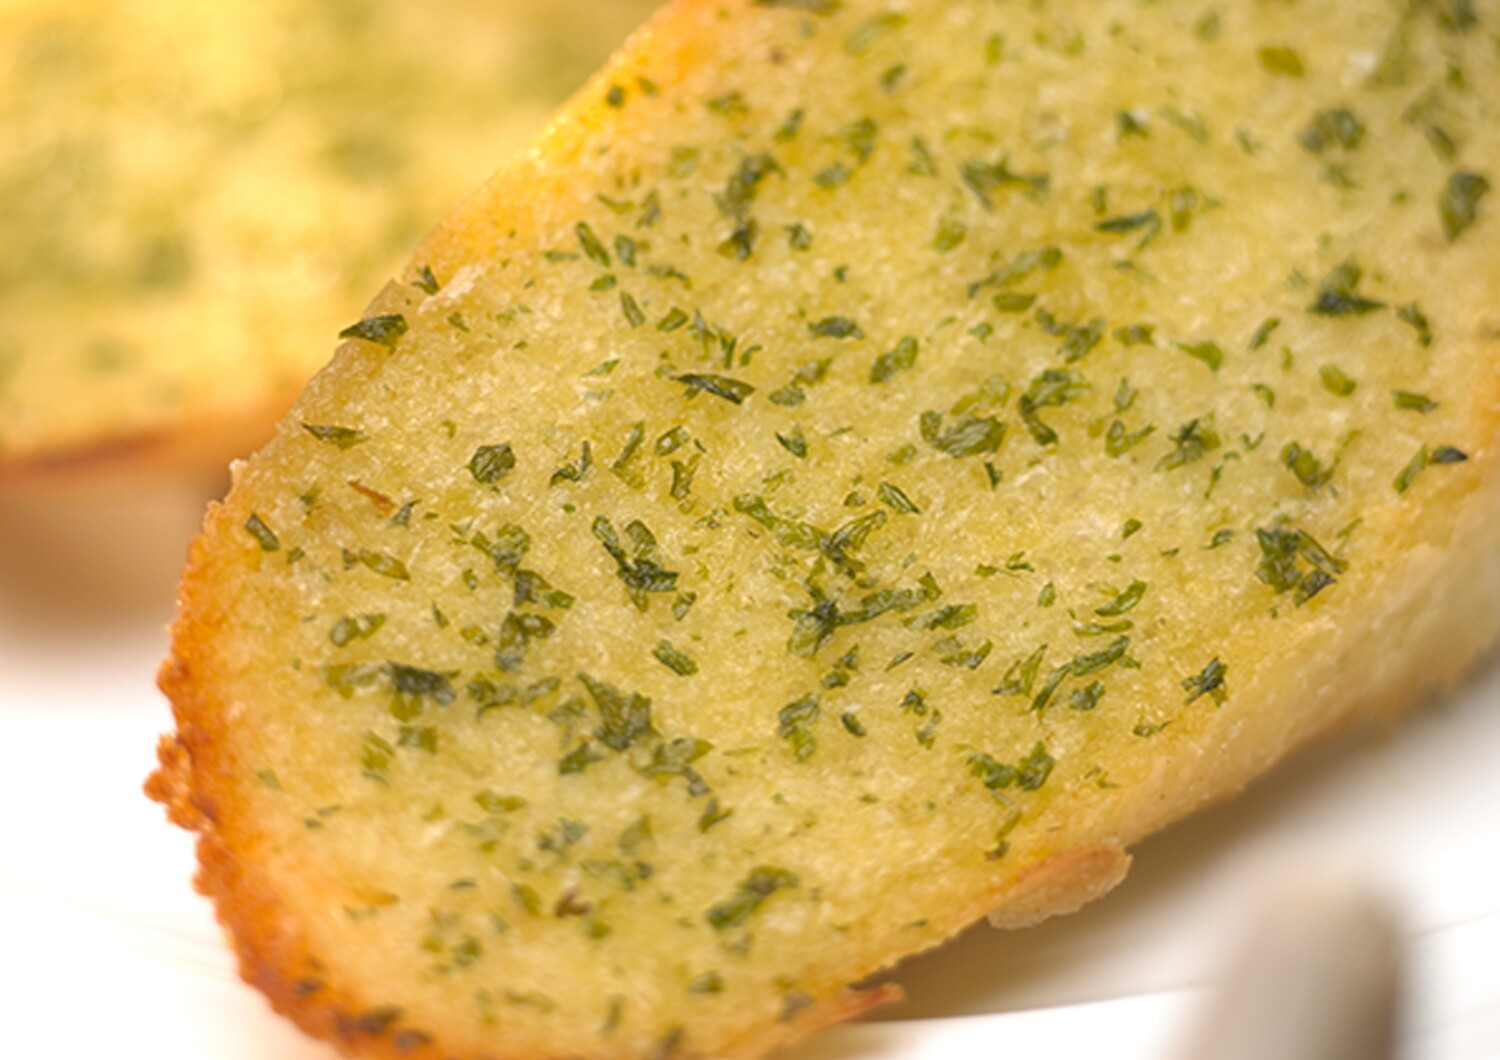 Hand spread Garlic Bread Slices